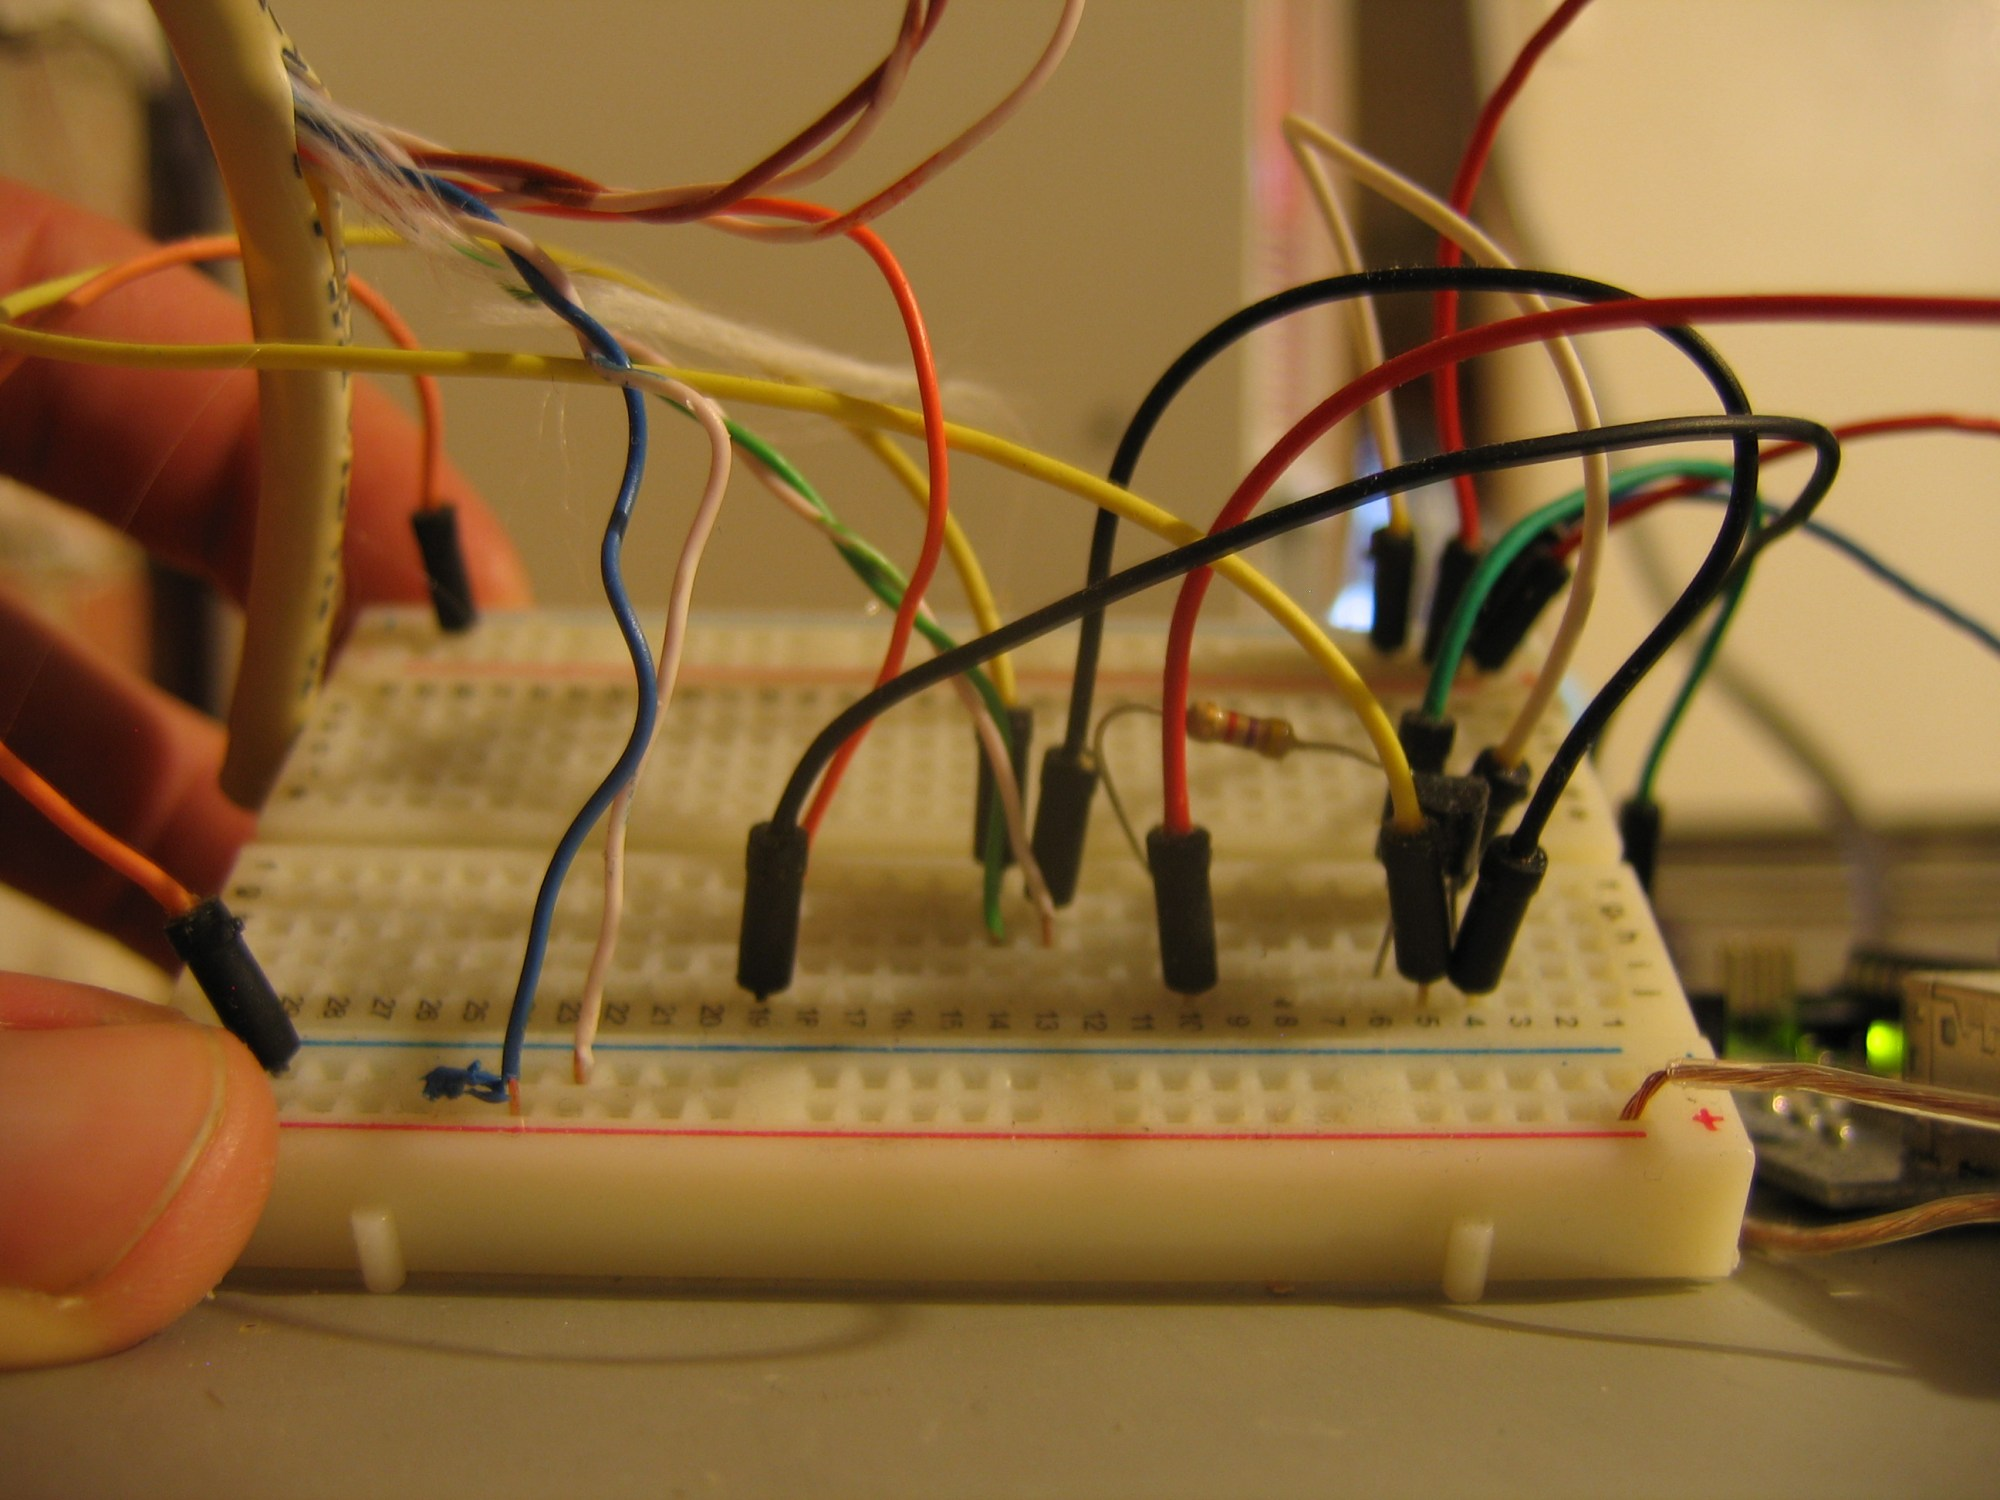 hight resolution of the breadboard setup for the hot tub controller